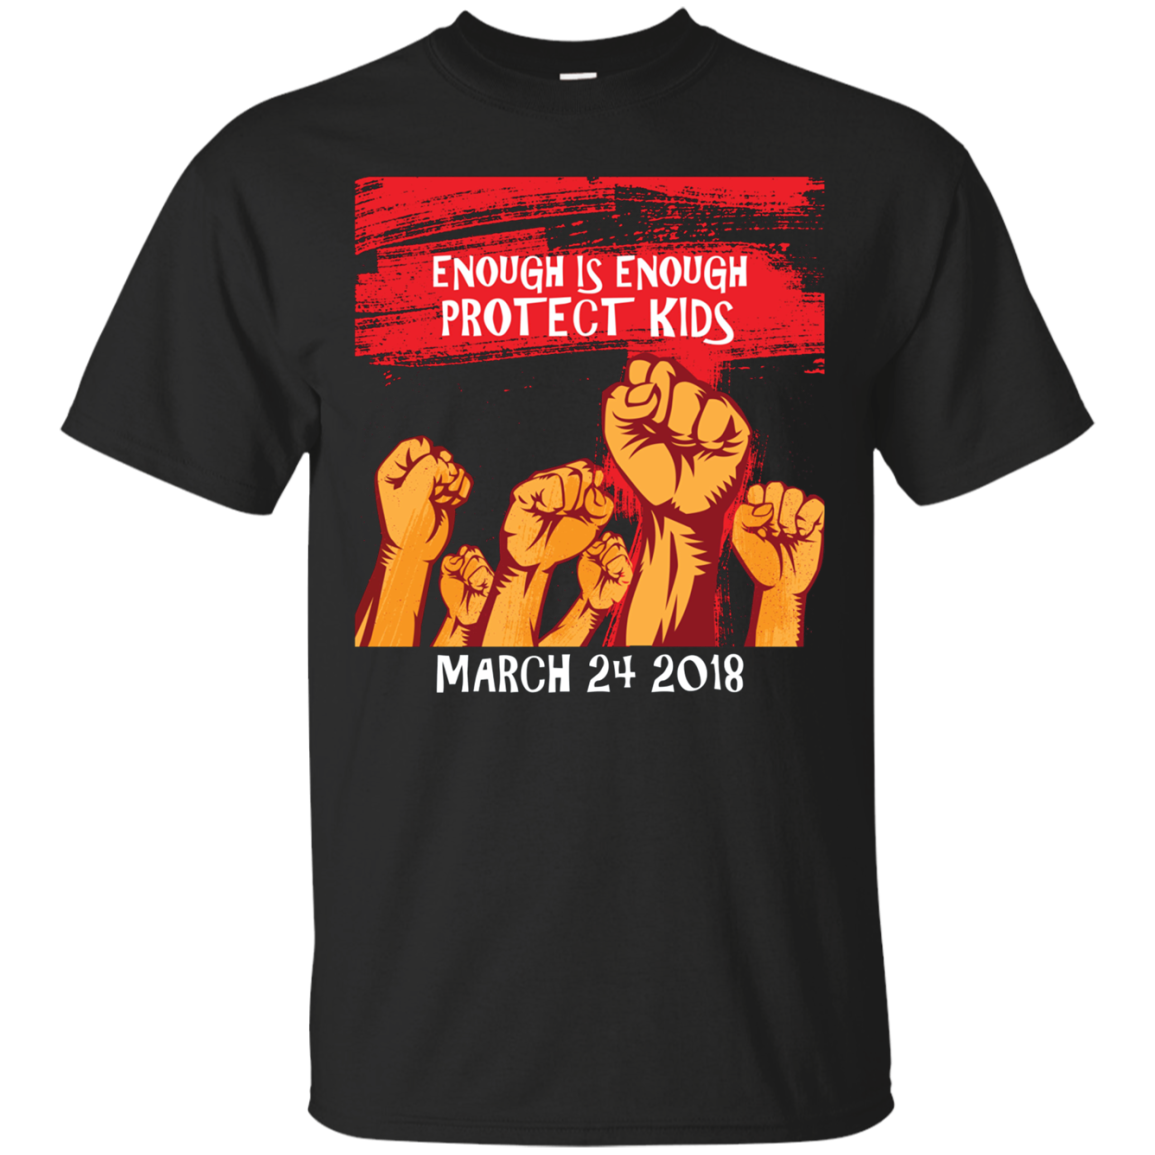 Enough is Enough Protest on March 24 Shirt Kids Protect Kids